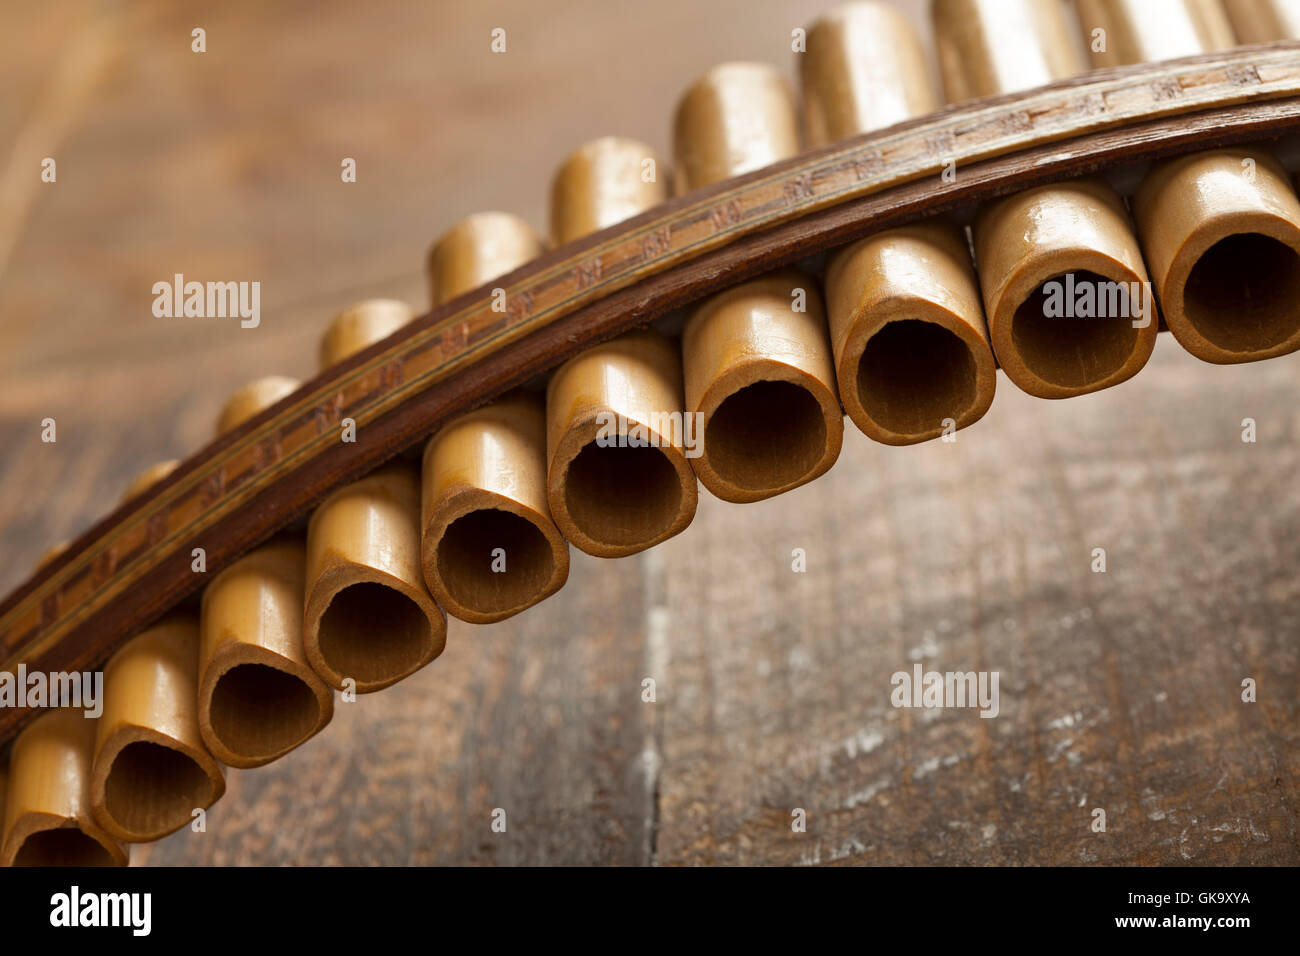 Pan flute instrument close up - Stock Image